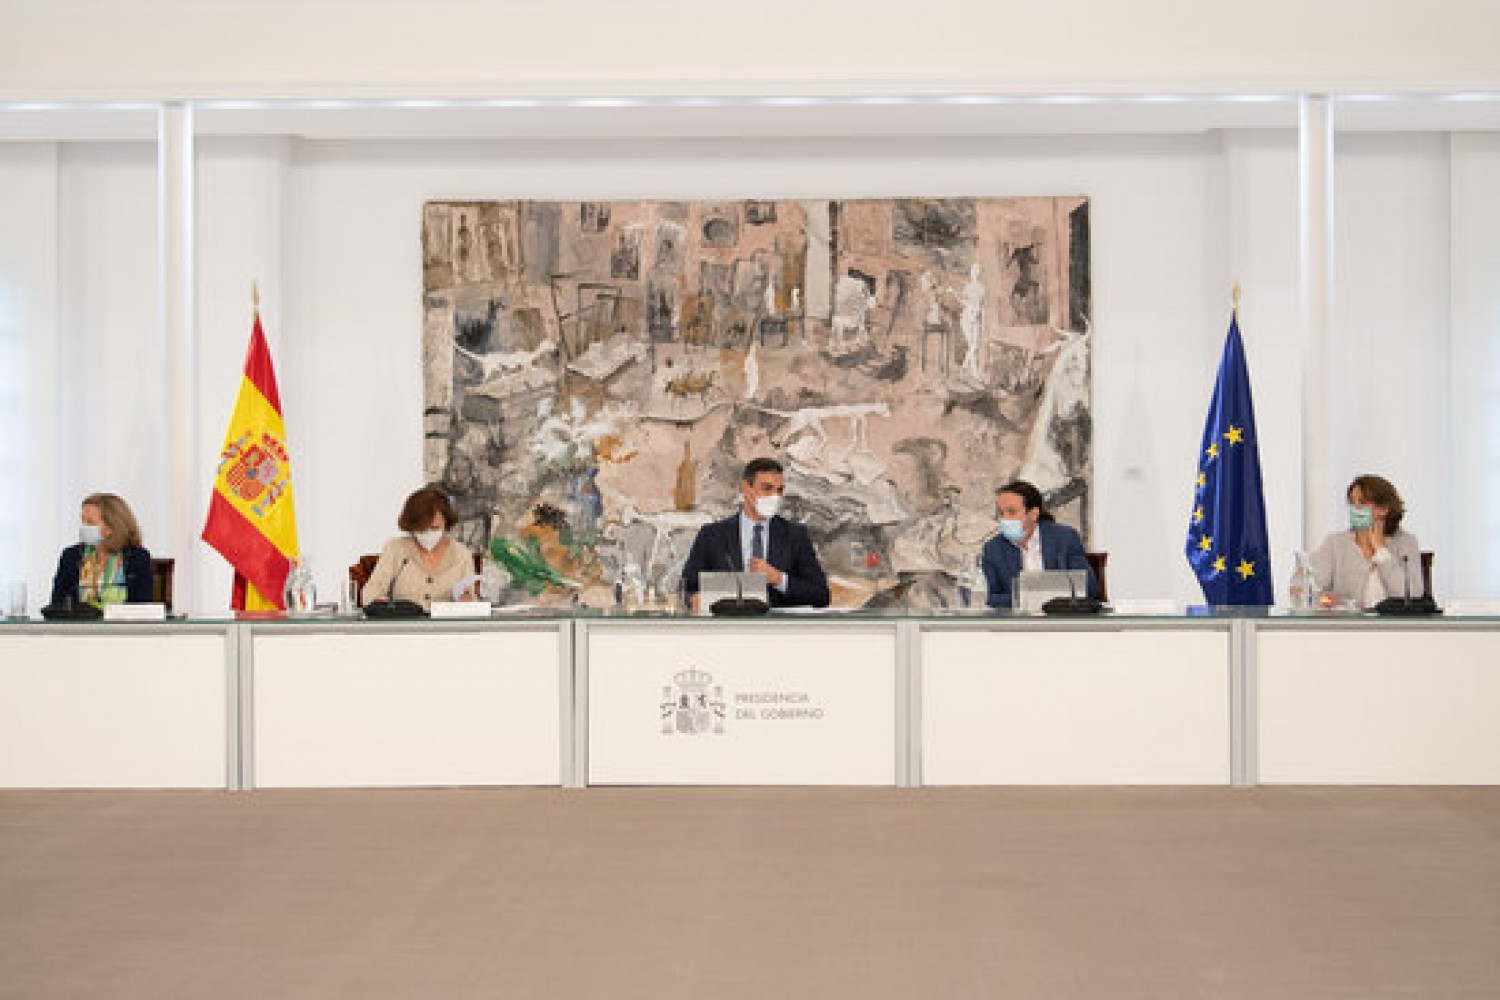 The Spanish government holds an emergency meeting to declare the state of alarm on October 25, with president Pedro Sánchez in the middle (by Moncloa/Borja Puig de la Bellacasa)